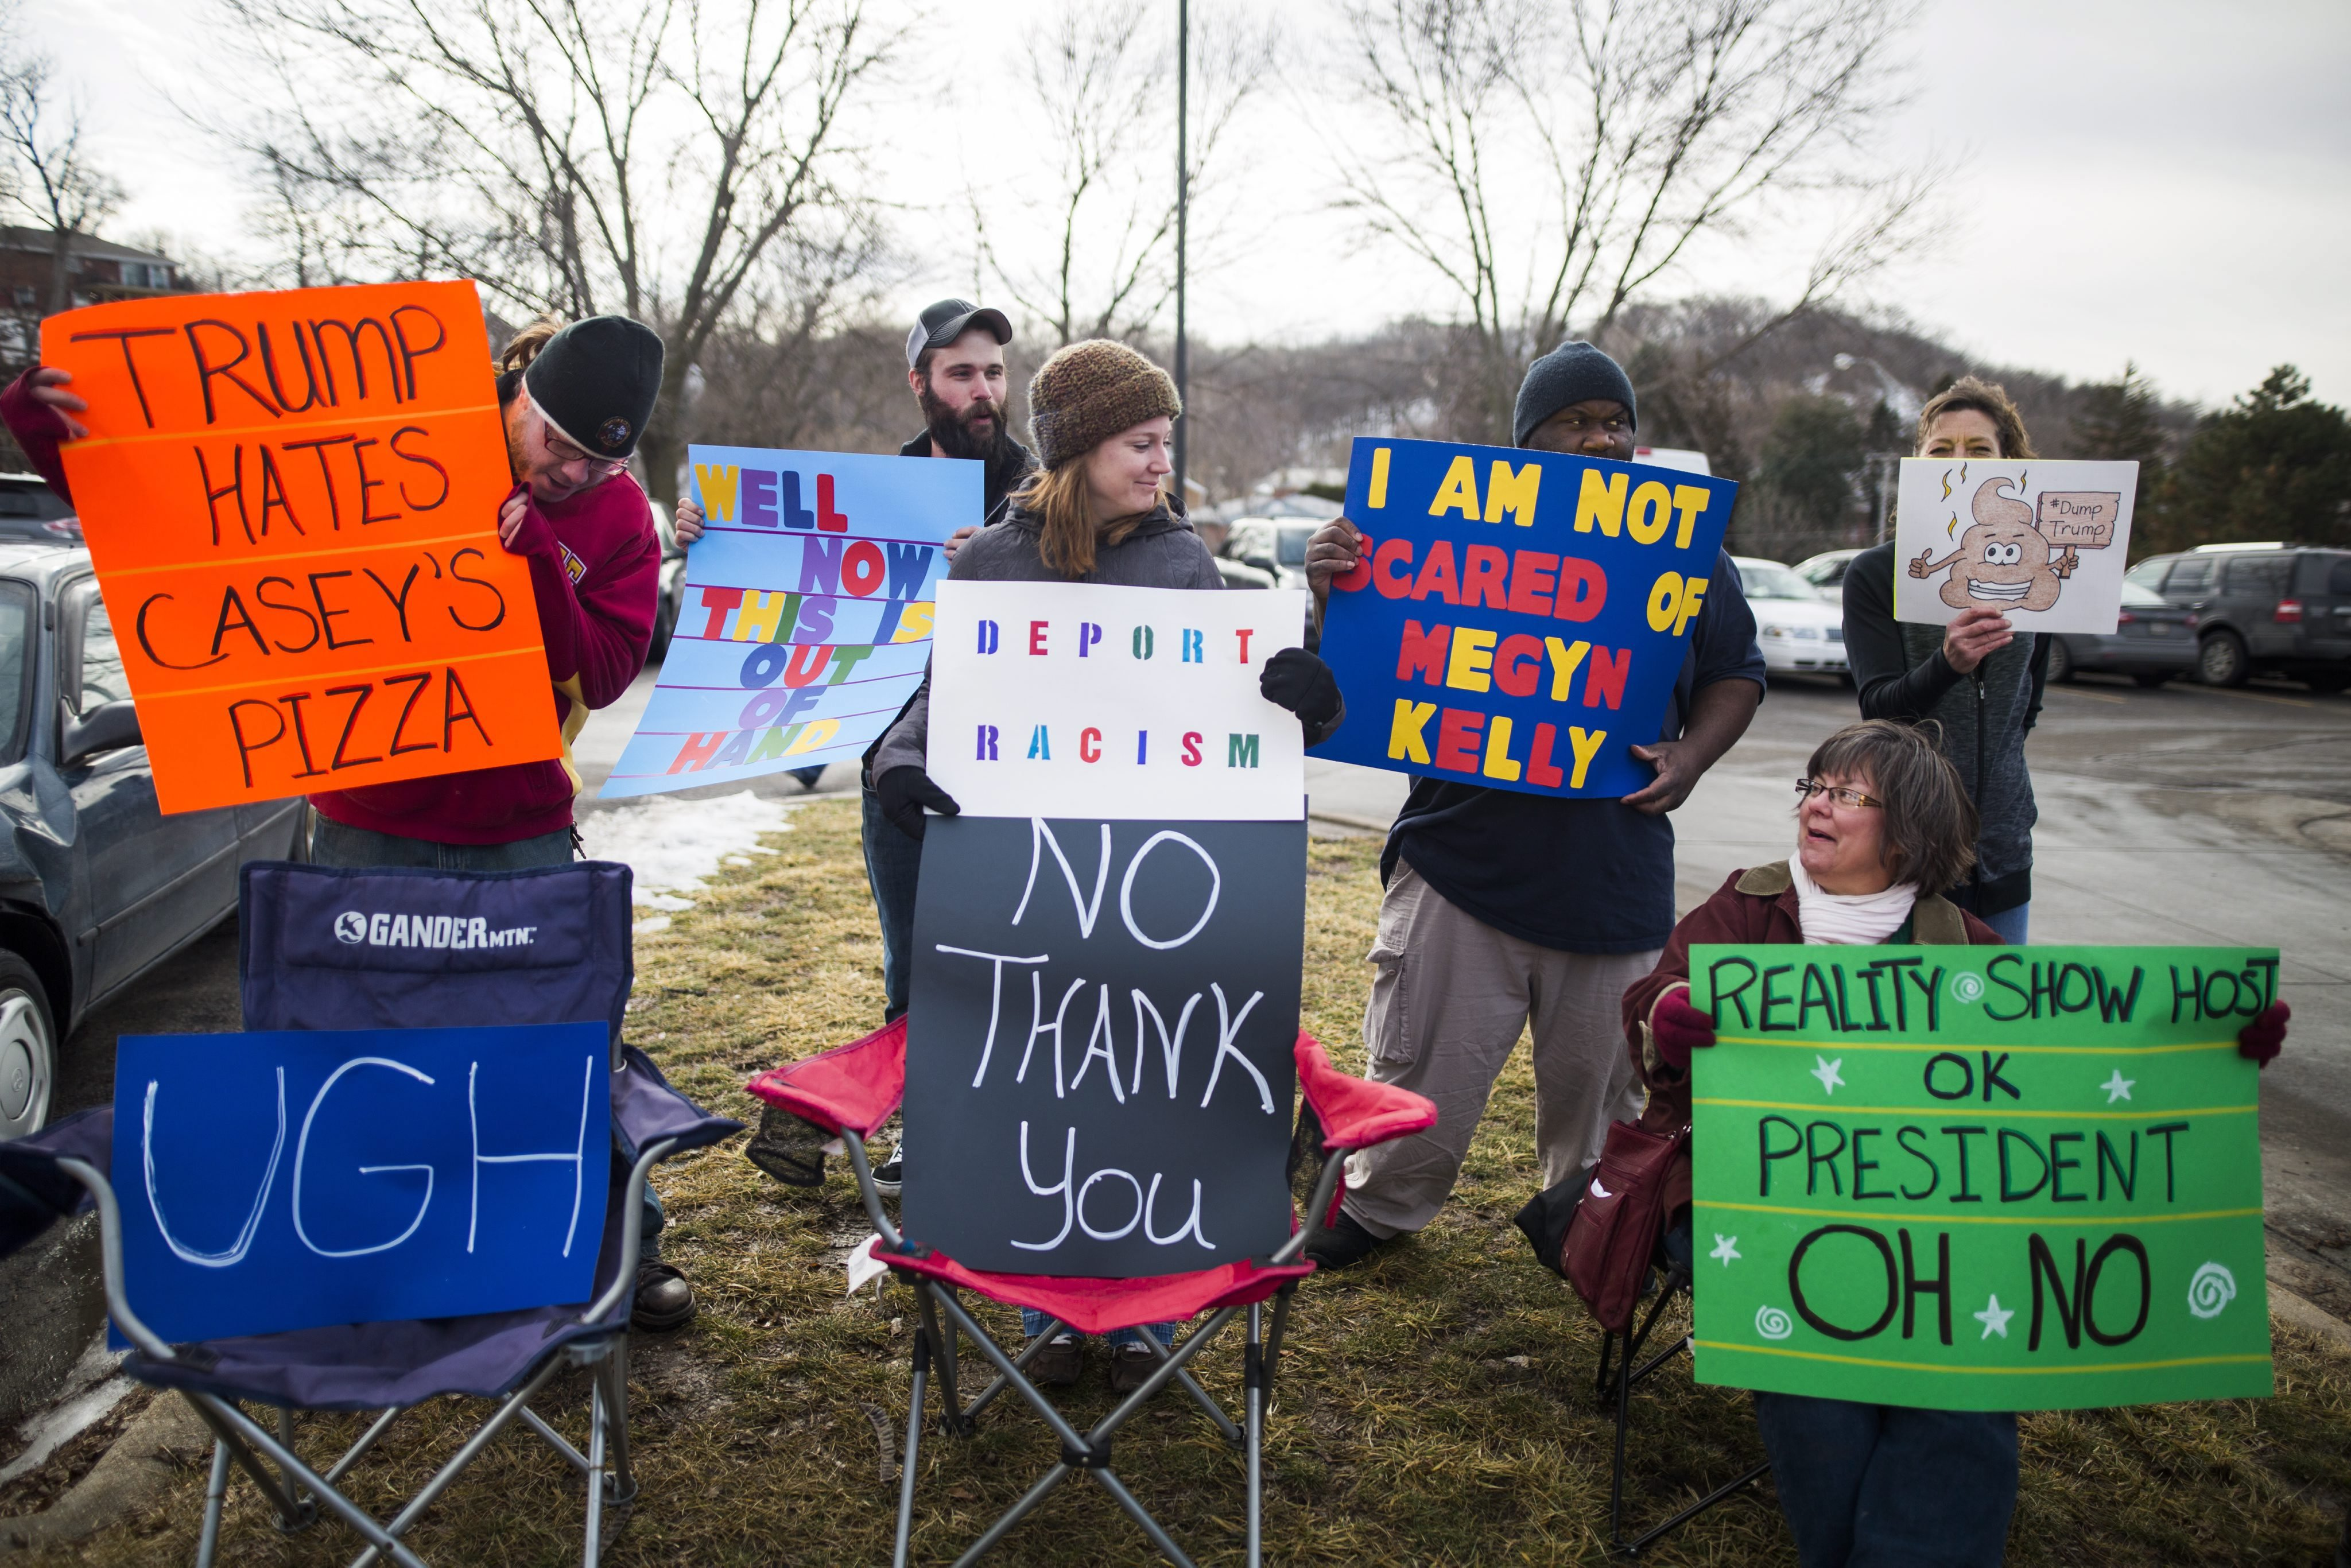 Protestors gather outside a campaign event for Republican presidential candidate Donald Trump at the Gerald Kirn Middle School in Council Bluffs, Iowa on Jan. 31 2016.